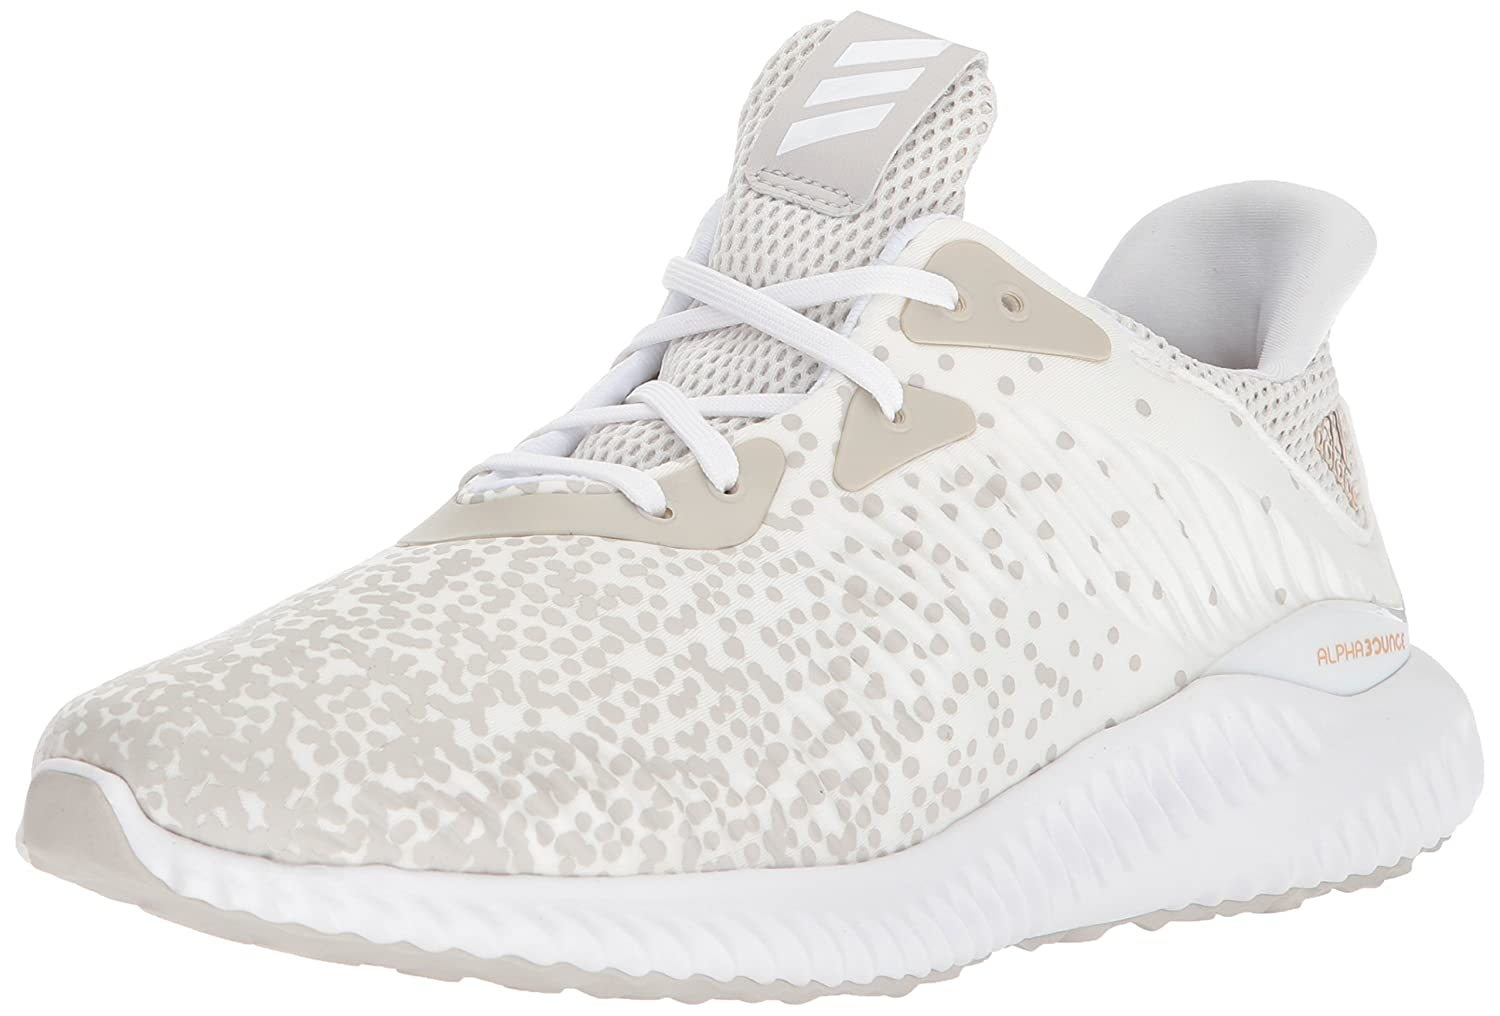 adidas Women's Alphabounce 1 W B071S6GYWH 5 B(M) US|White/White/Grey One